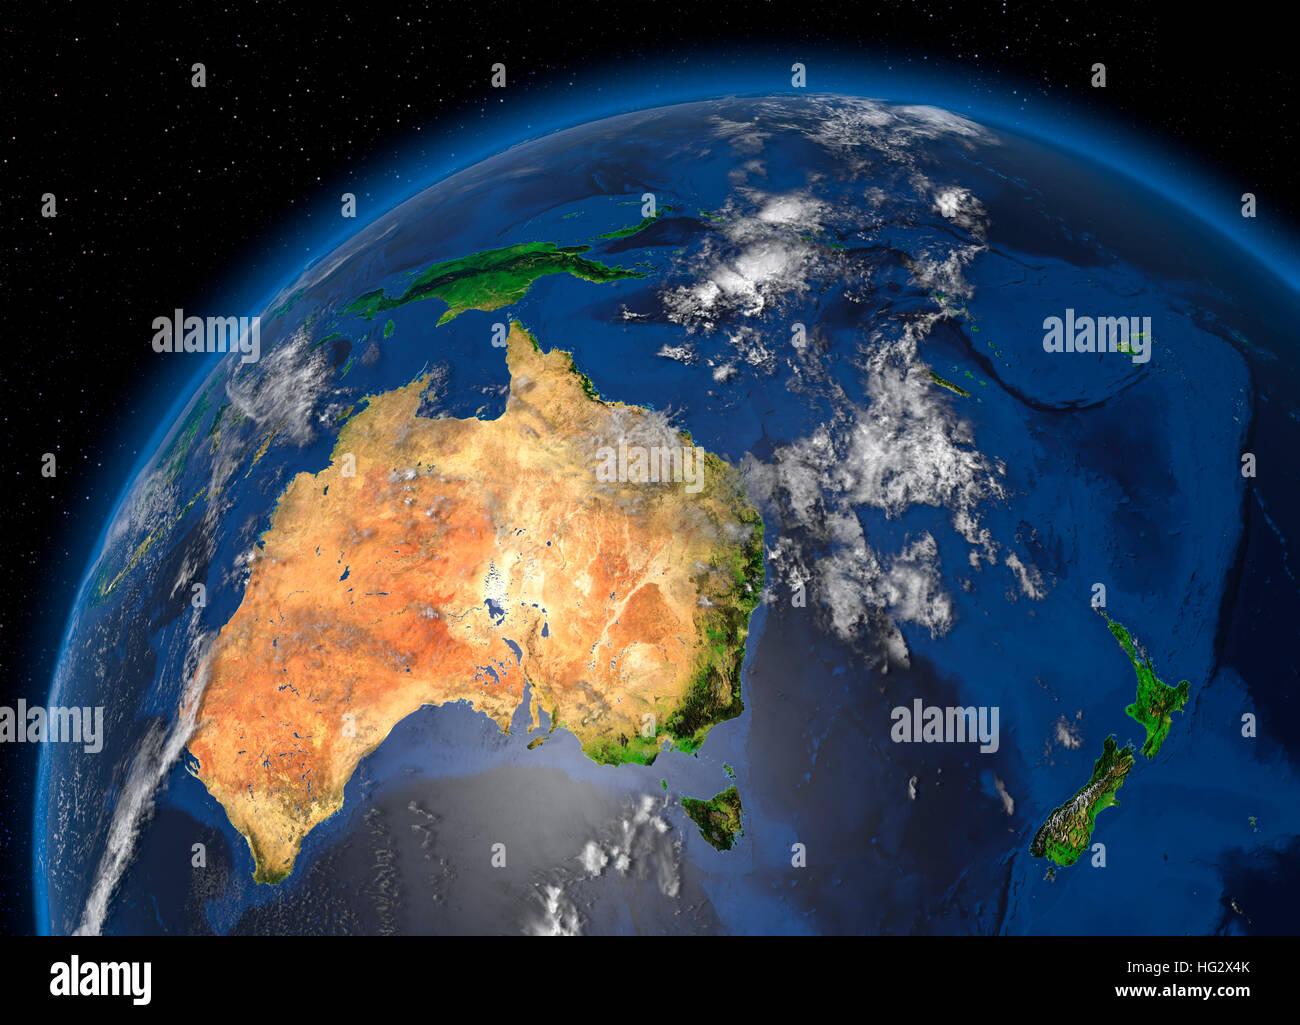 Map Of Australia From Space.Earth Viewed From Space Showing Australia Realistic Digital Stock